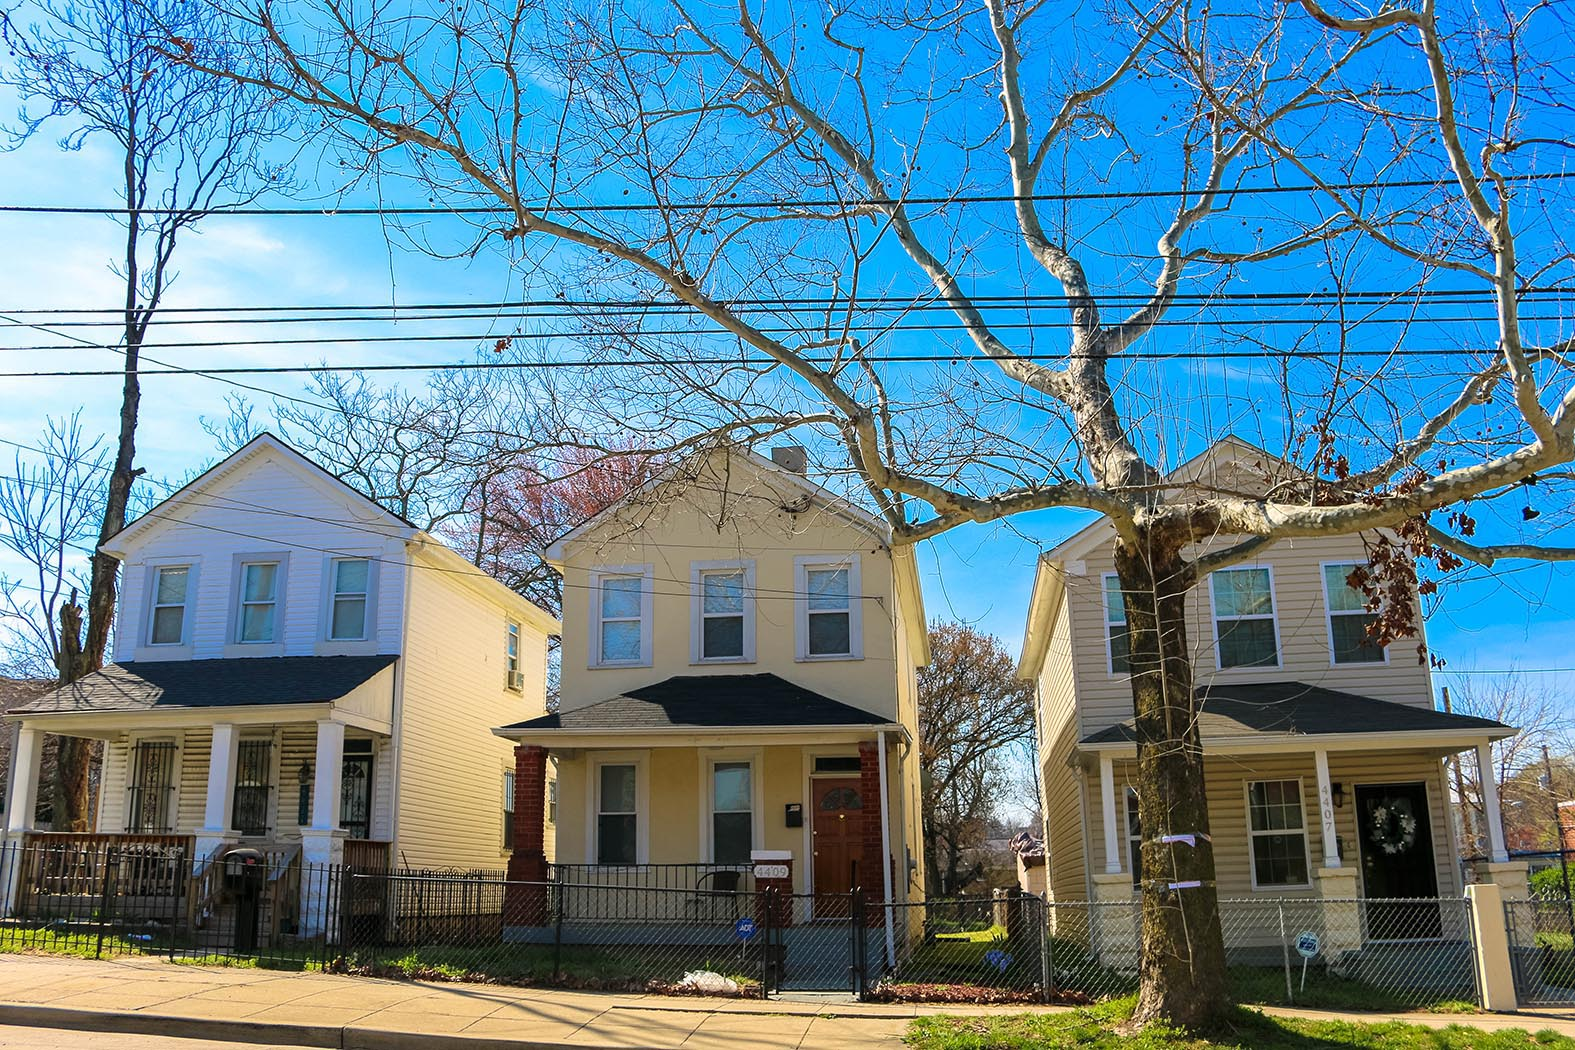 Single family homes in Deanwood, Washington, D.C.